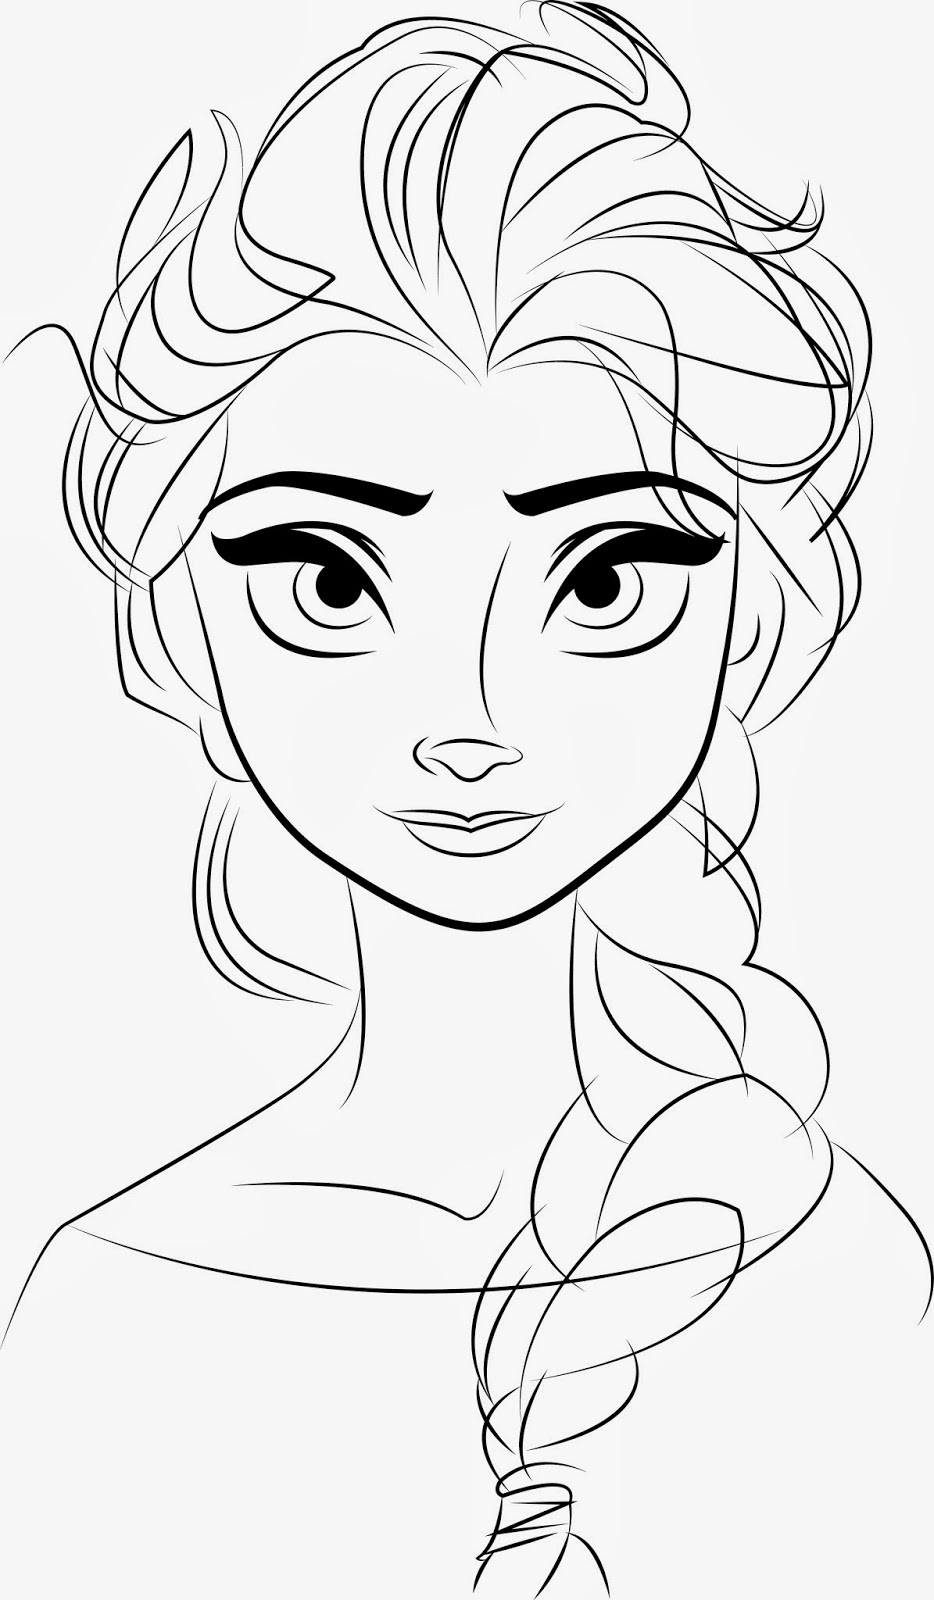 Line Drawing Disney : Free printable elsa coloring pages for kids best